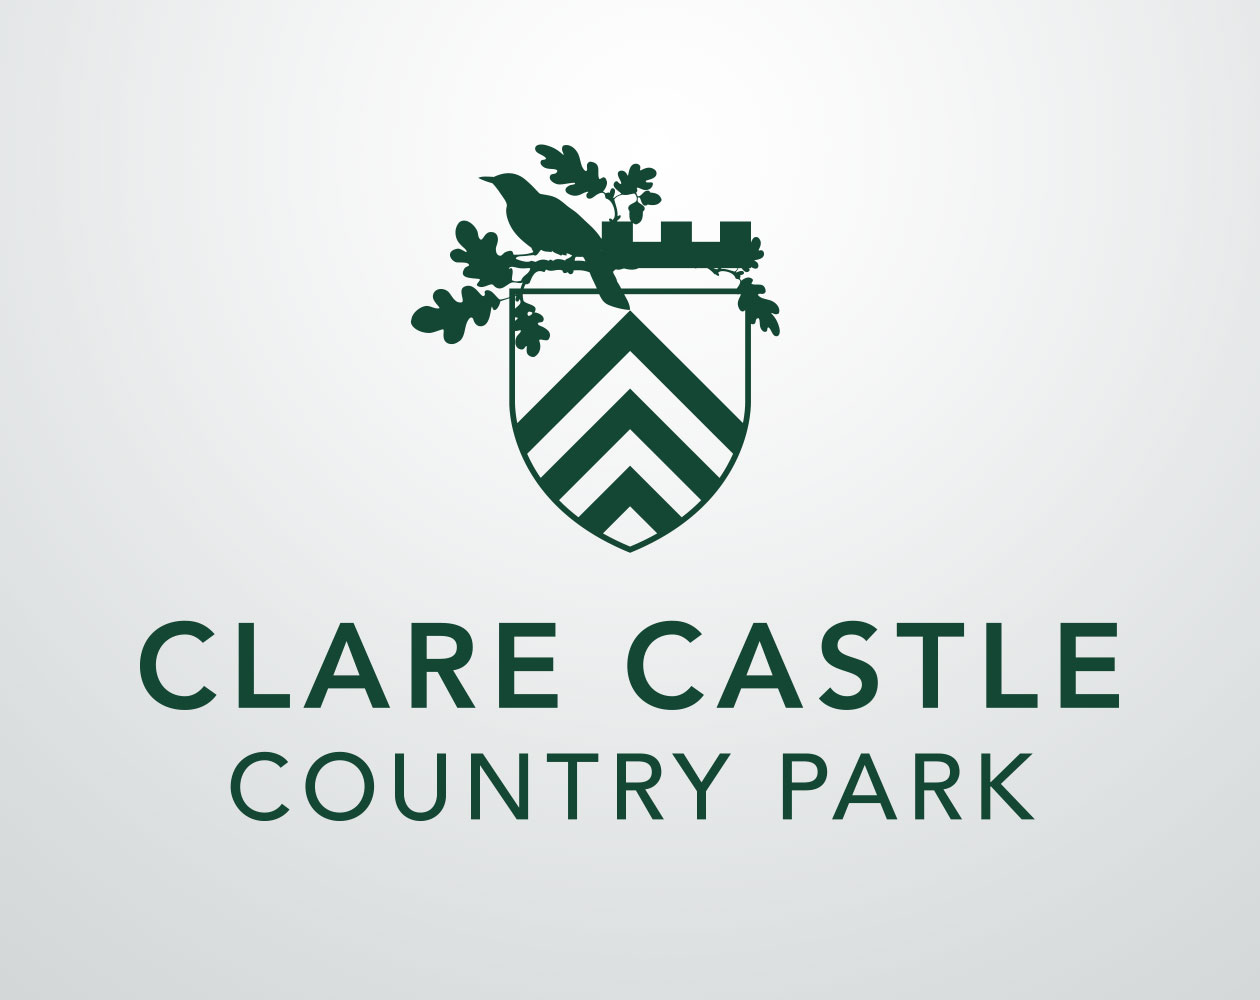 Clare Castle Country Park